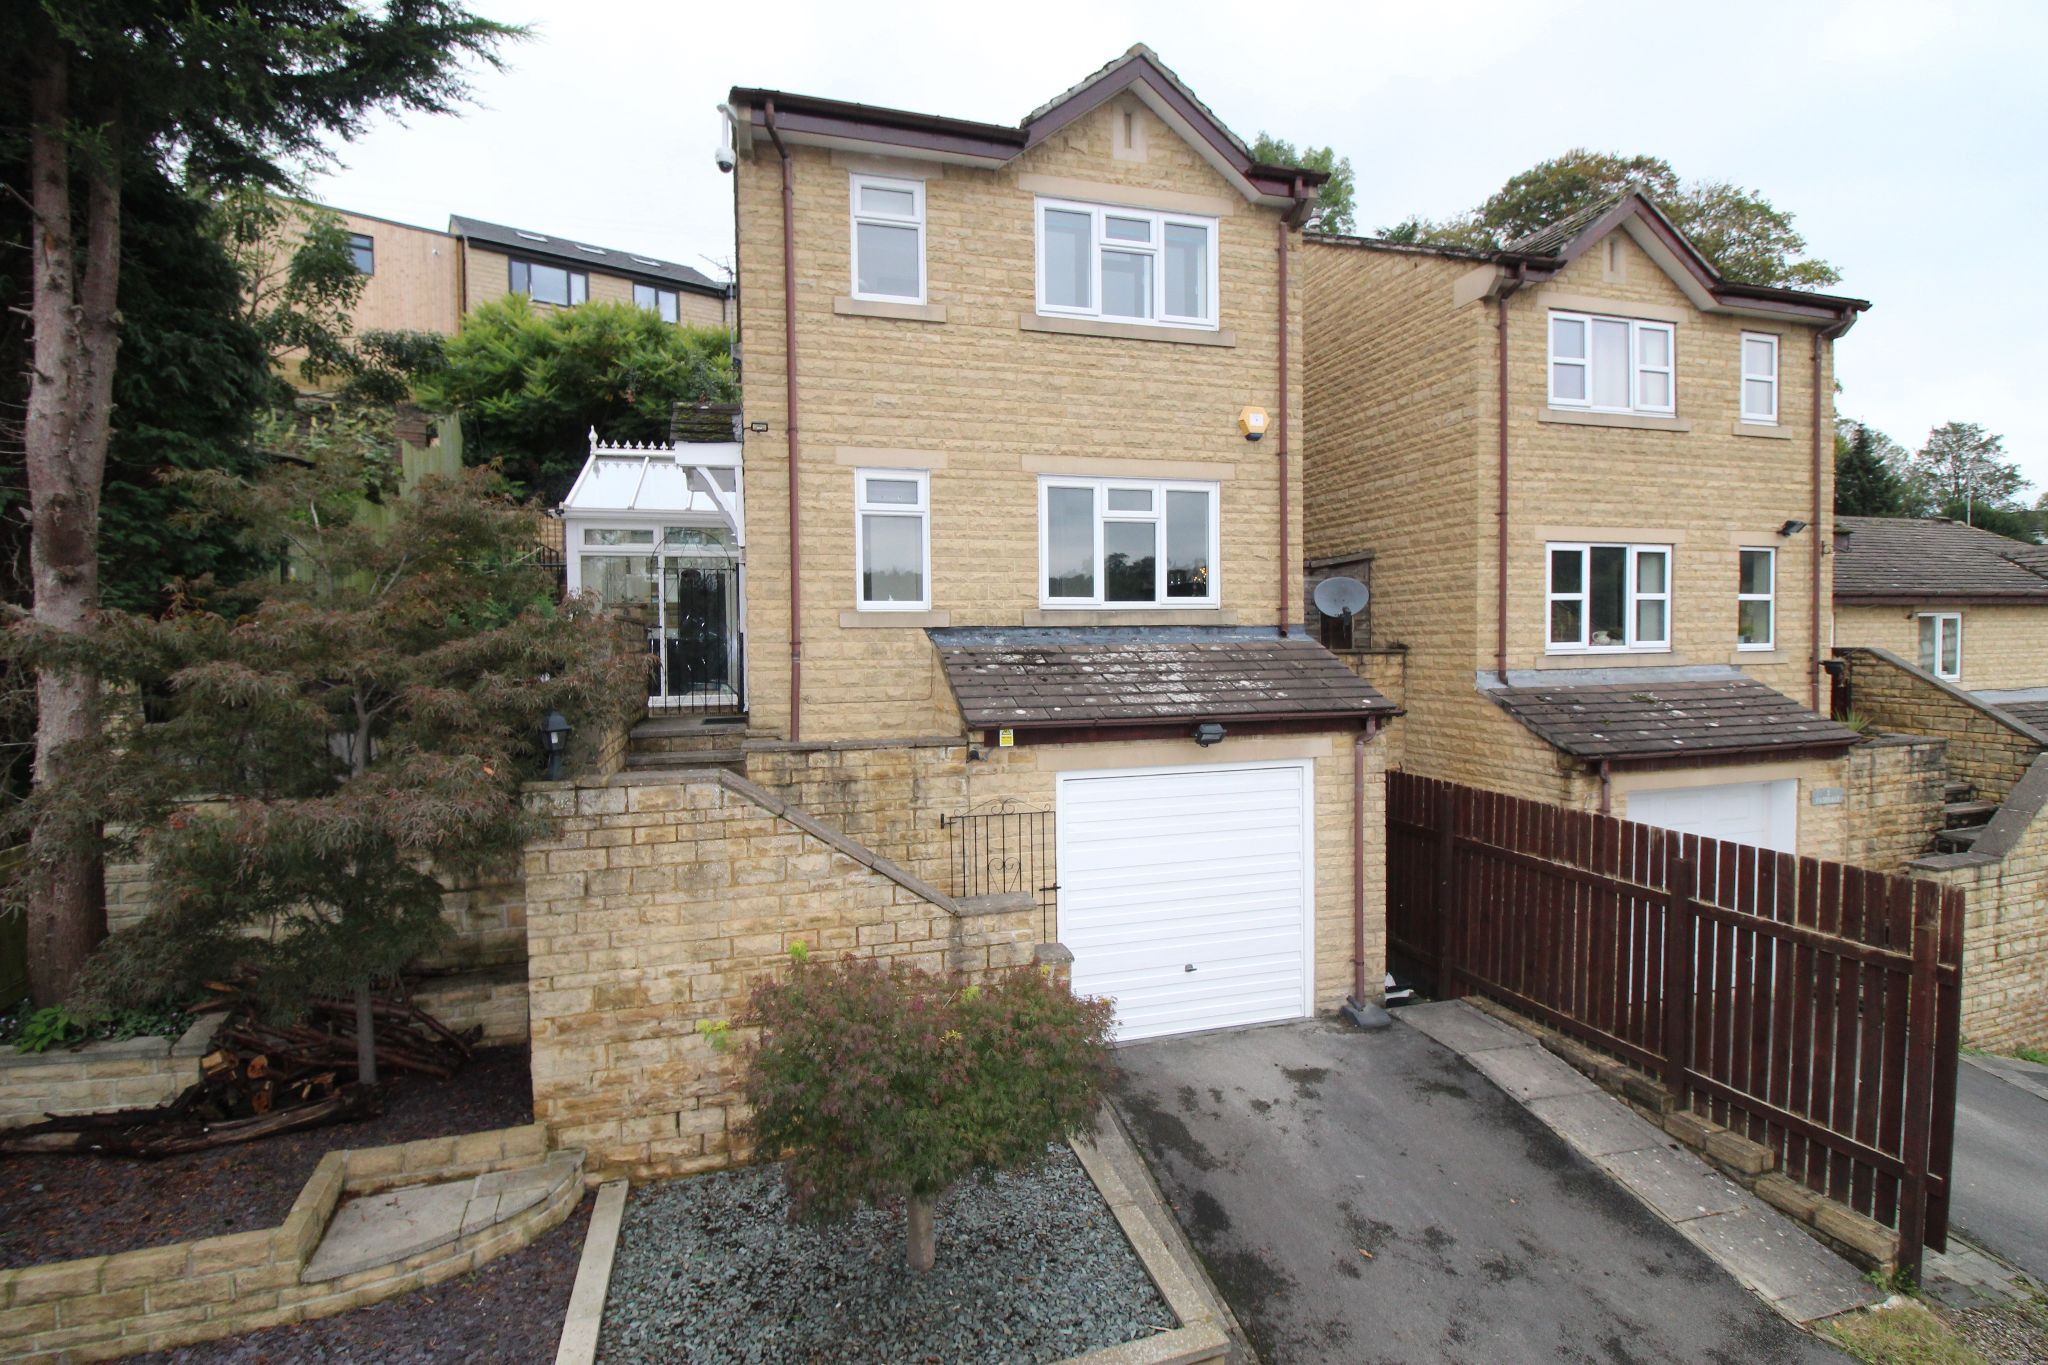 3 bedroom detached house For Sale in Brighouse - Front elevation